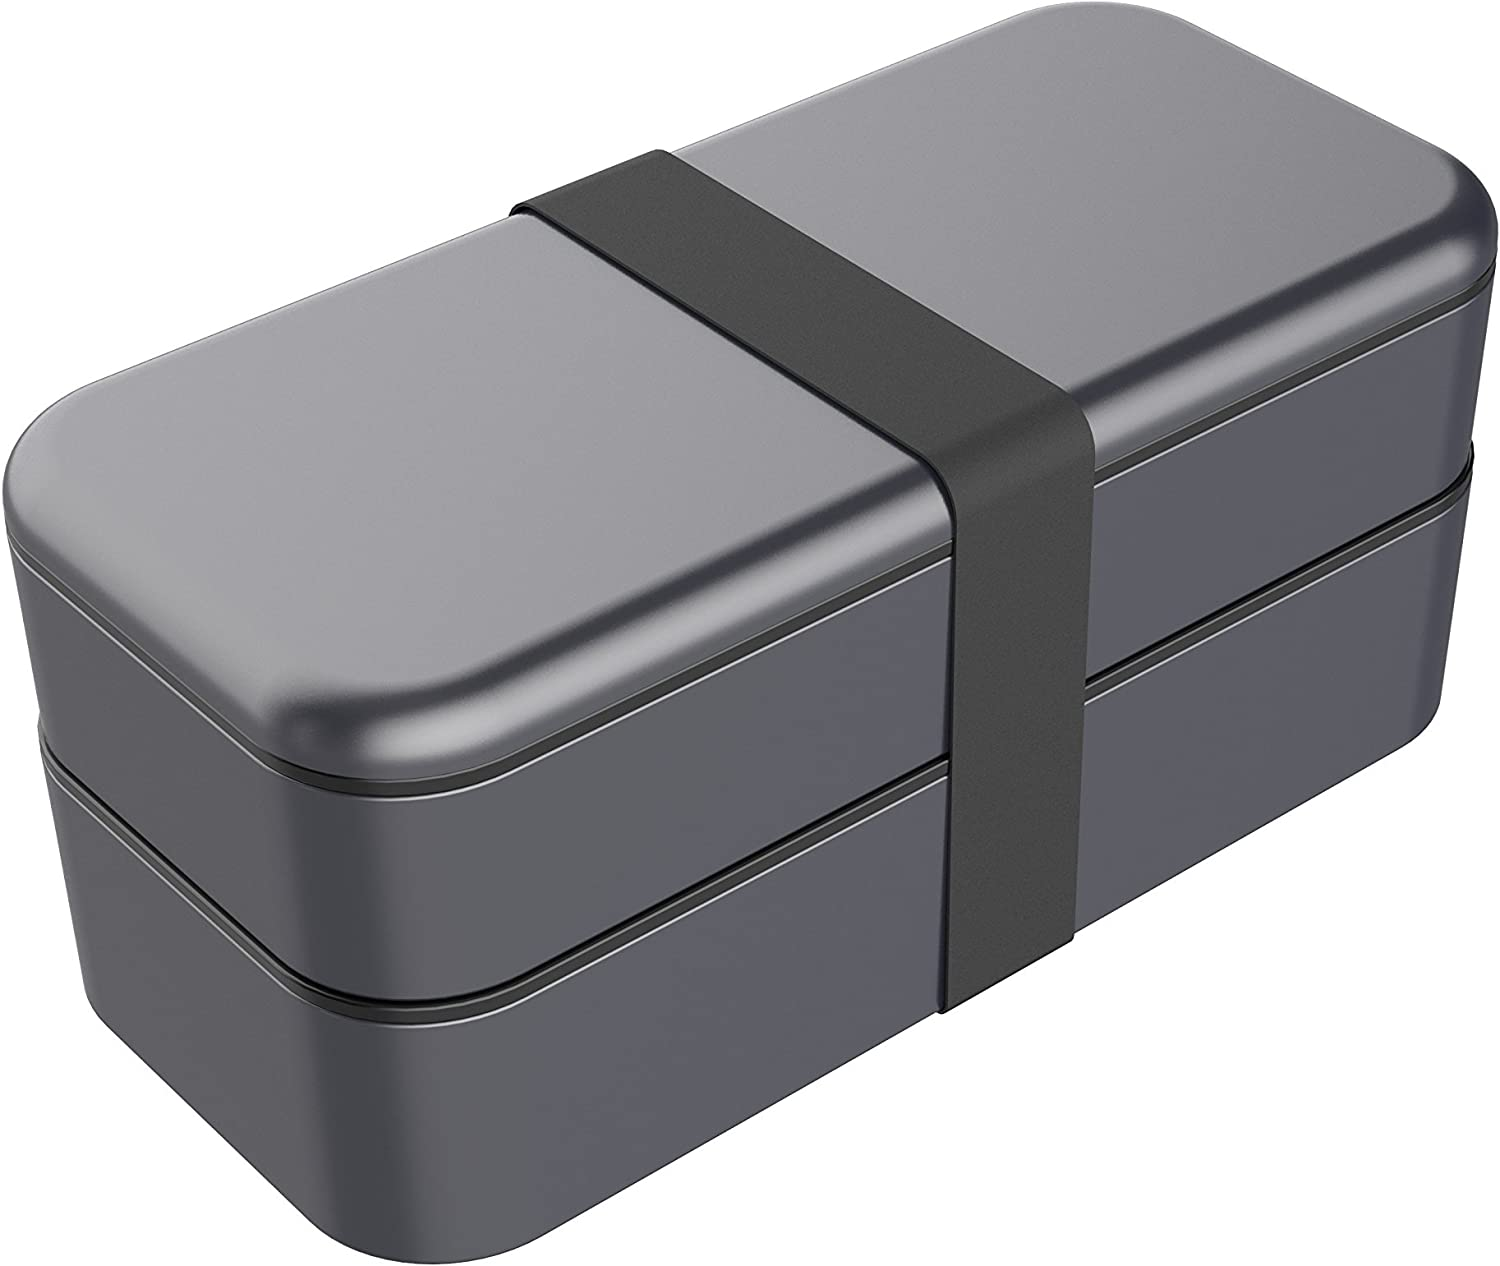 Function101 BentoStack Travel Case and Desktop Organizer - Compatible with Apple Products and Accessories - Space Gray